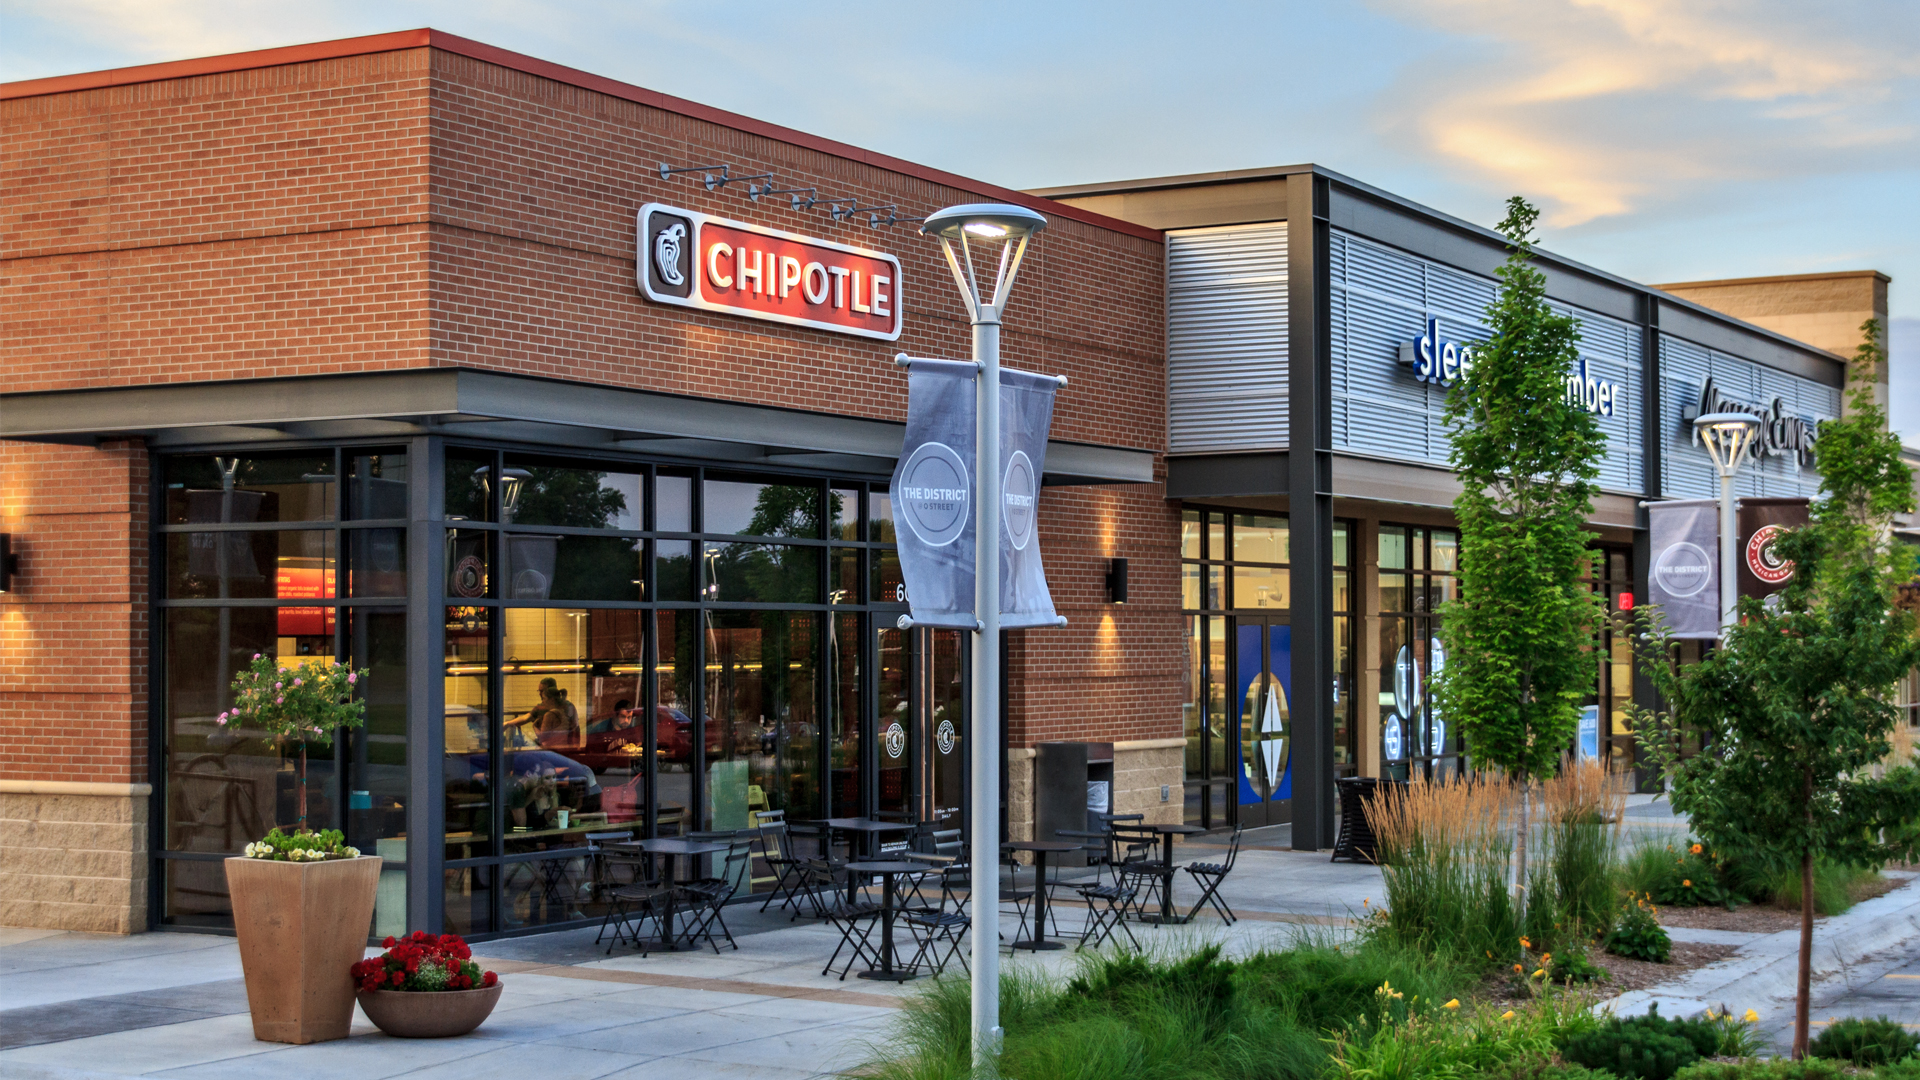 <p>O Street has always been the commercial center of Lincoln. That continues with 11,600 square feet of retail space, including Chipotle, Select Comfort, Massage Envy and Jos A. Bank.</p>